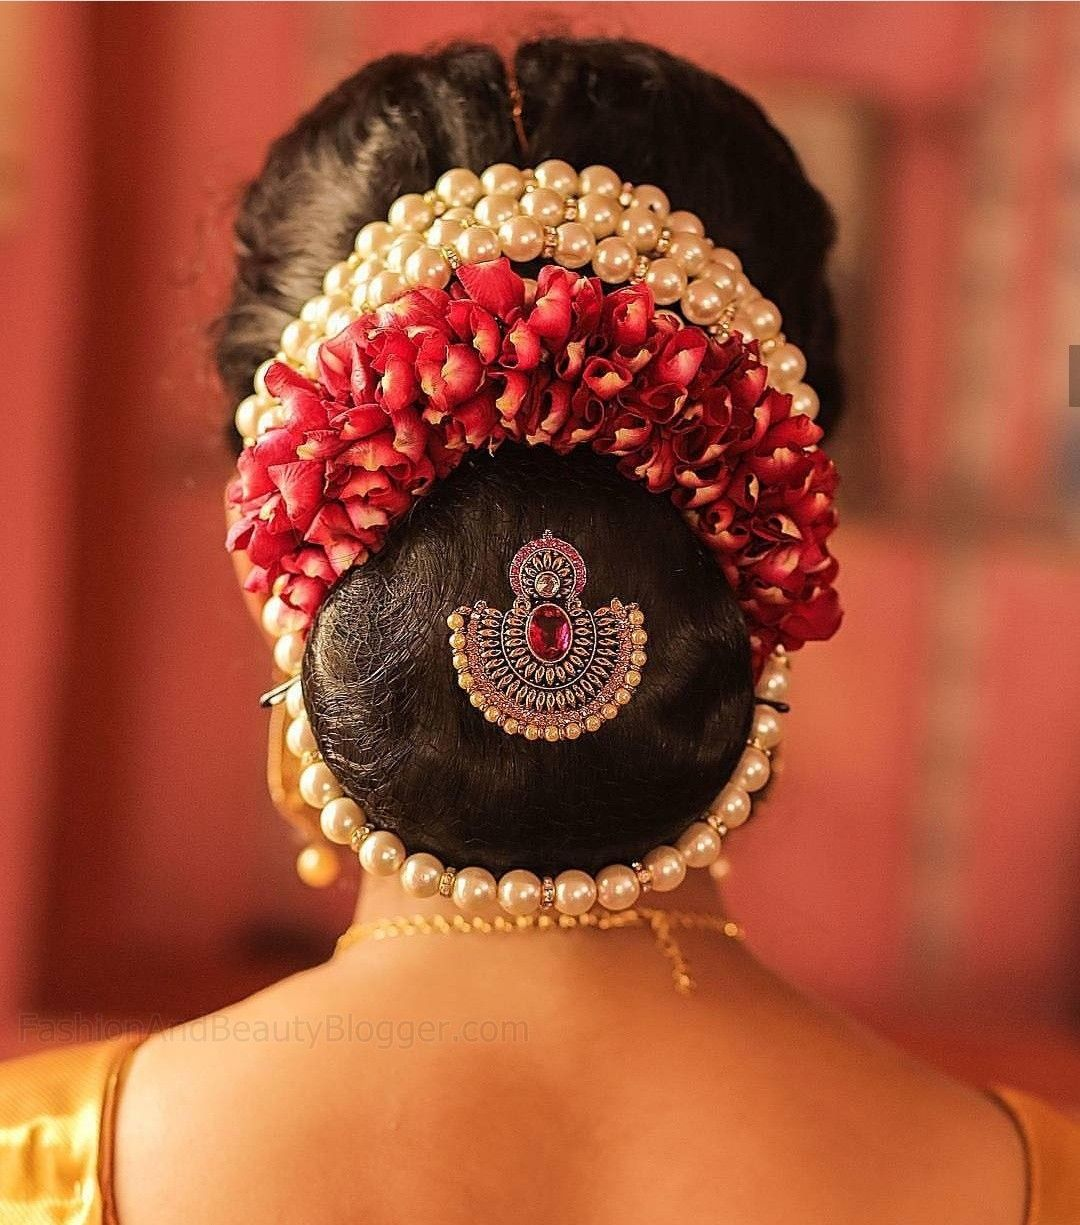 Indian Wedding Bun Hairstyle Pictures For To Be Brides Fabb Wedding Bun Hairstyles Indian Bride Hairstyle Bridal Hair Buns